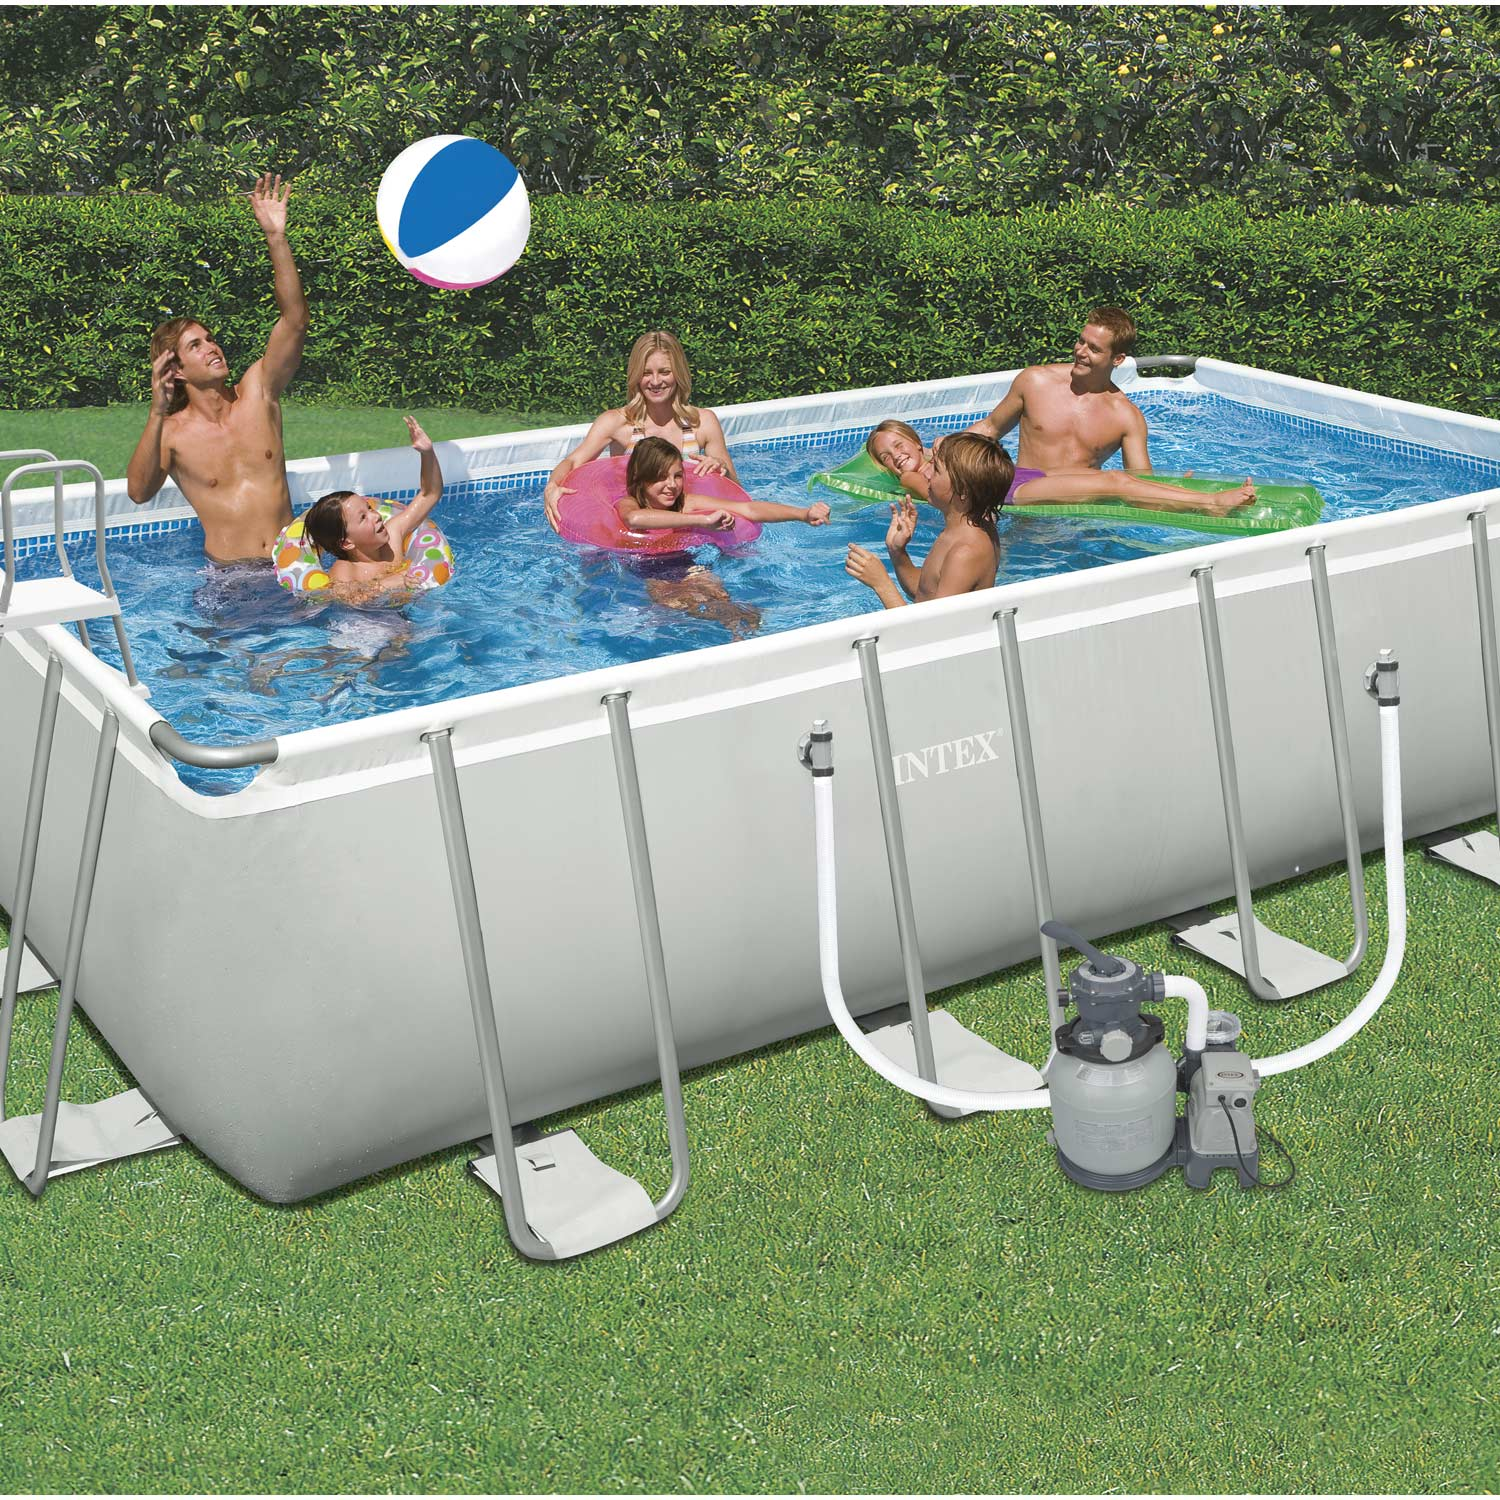 Piscine hors sol autoportante tubulaire intex l x l for Leroy merlin piscine